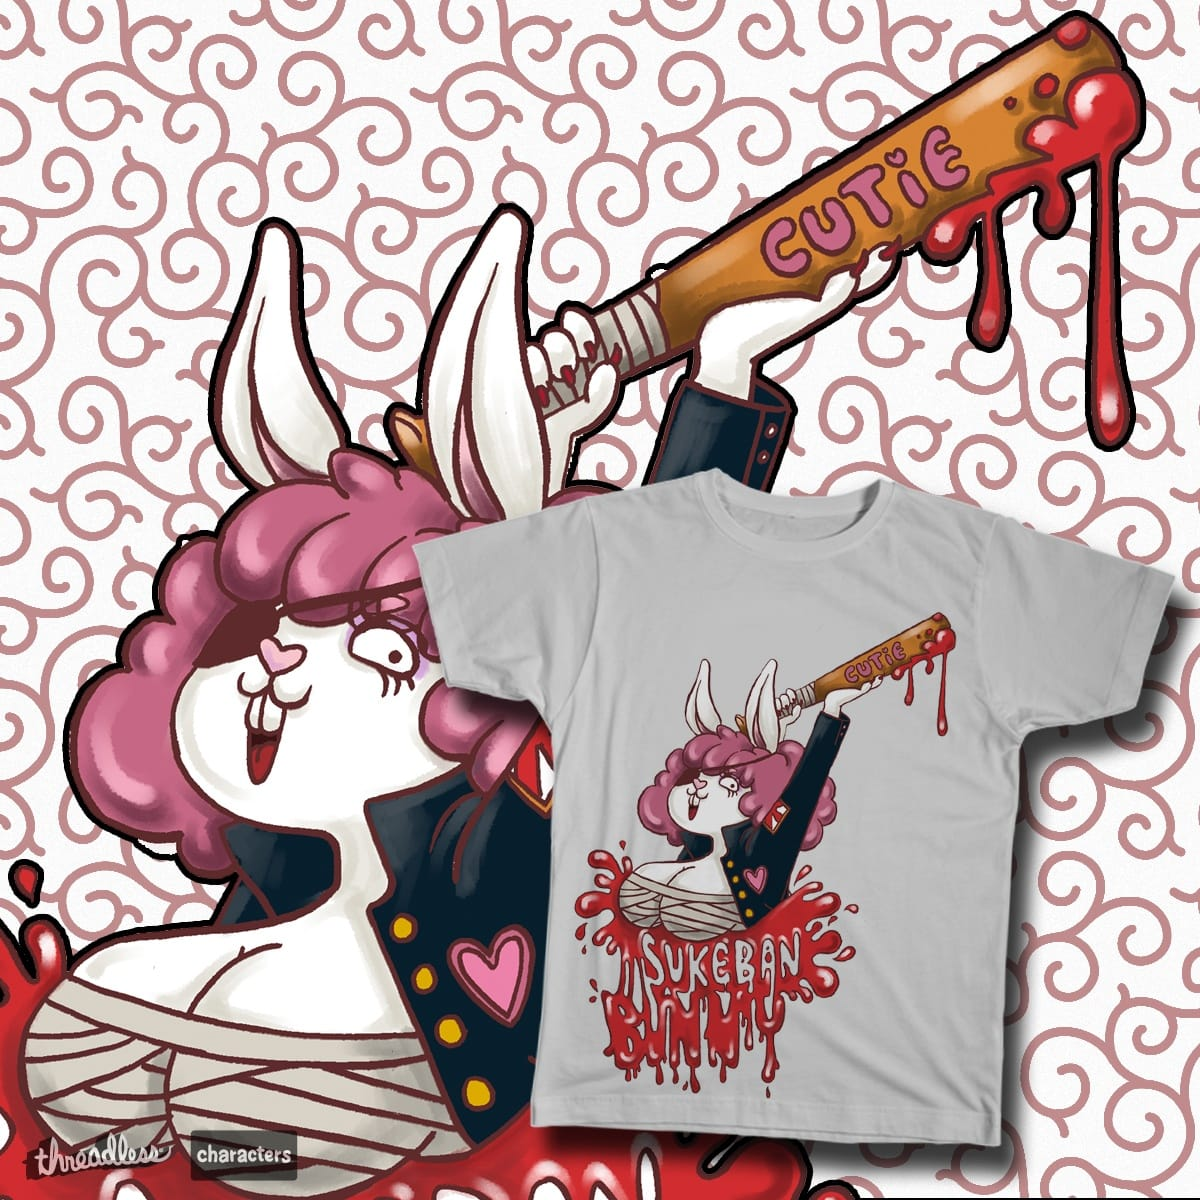 Sukeban Bunny by Thiseyeball on Threadless